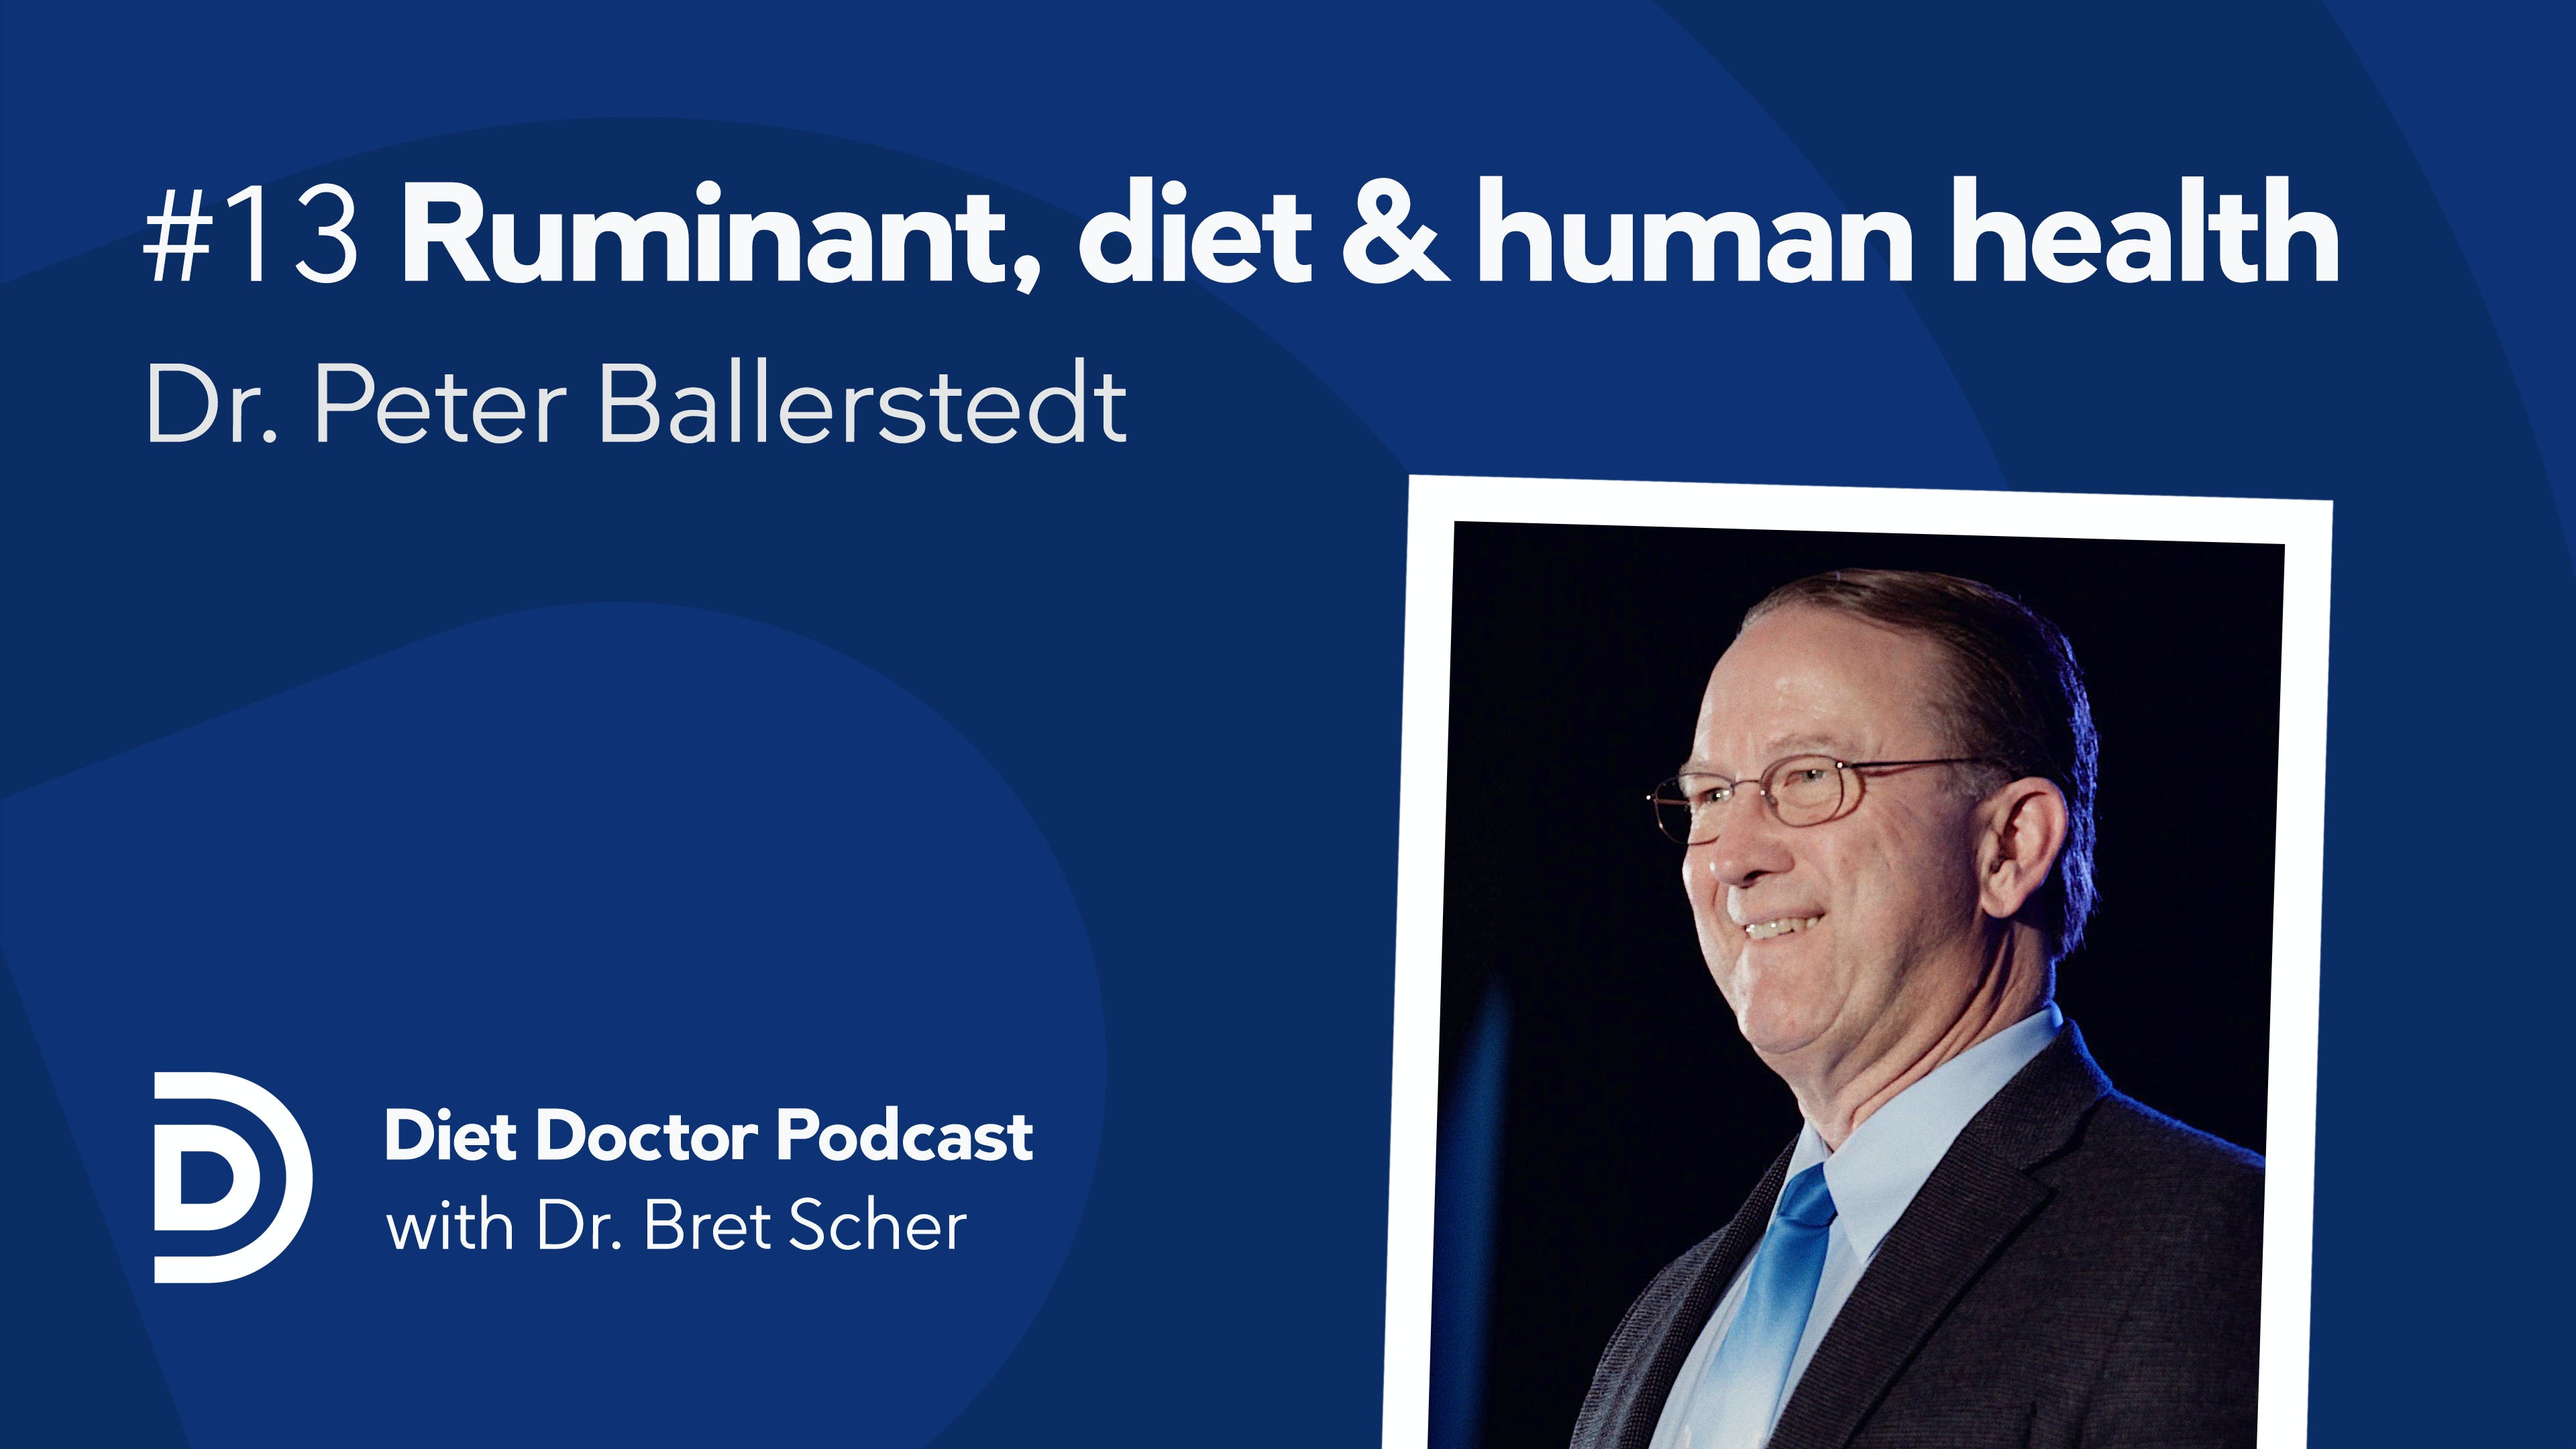 Diet Doctor podcast #13 with Peter Ballerstedt